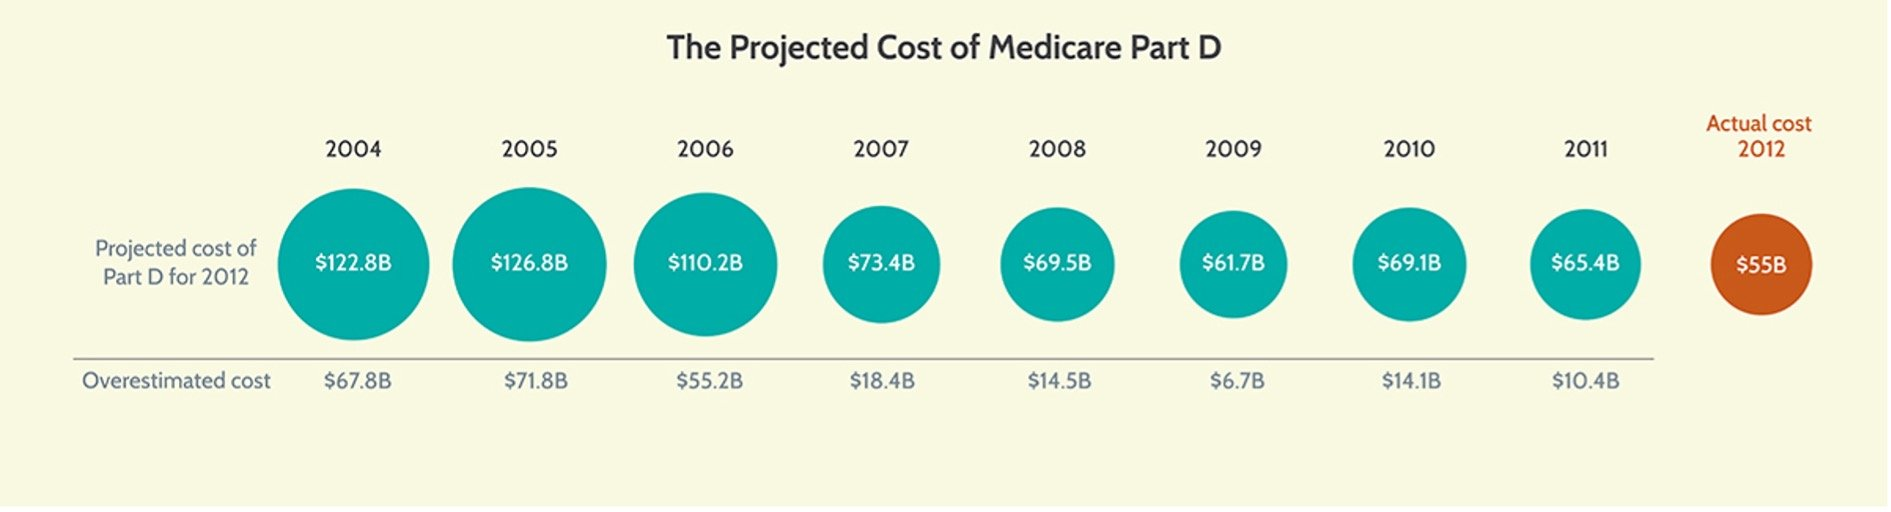 The Projected Cost of Medicare Part D Chart